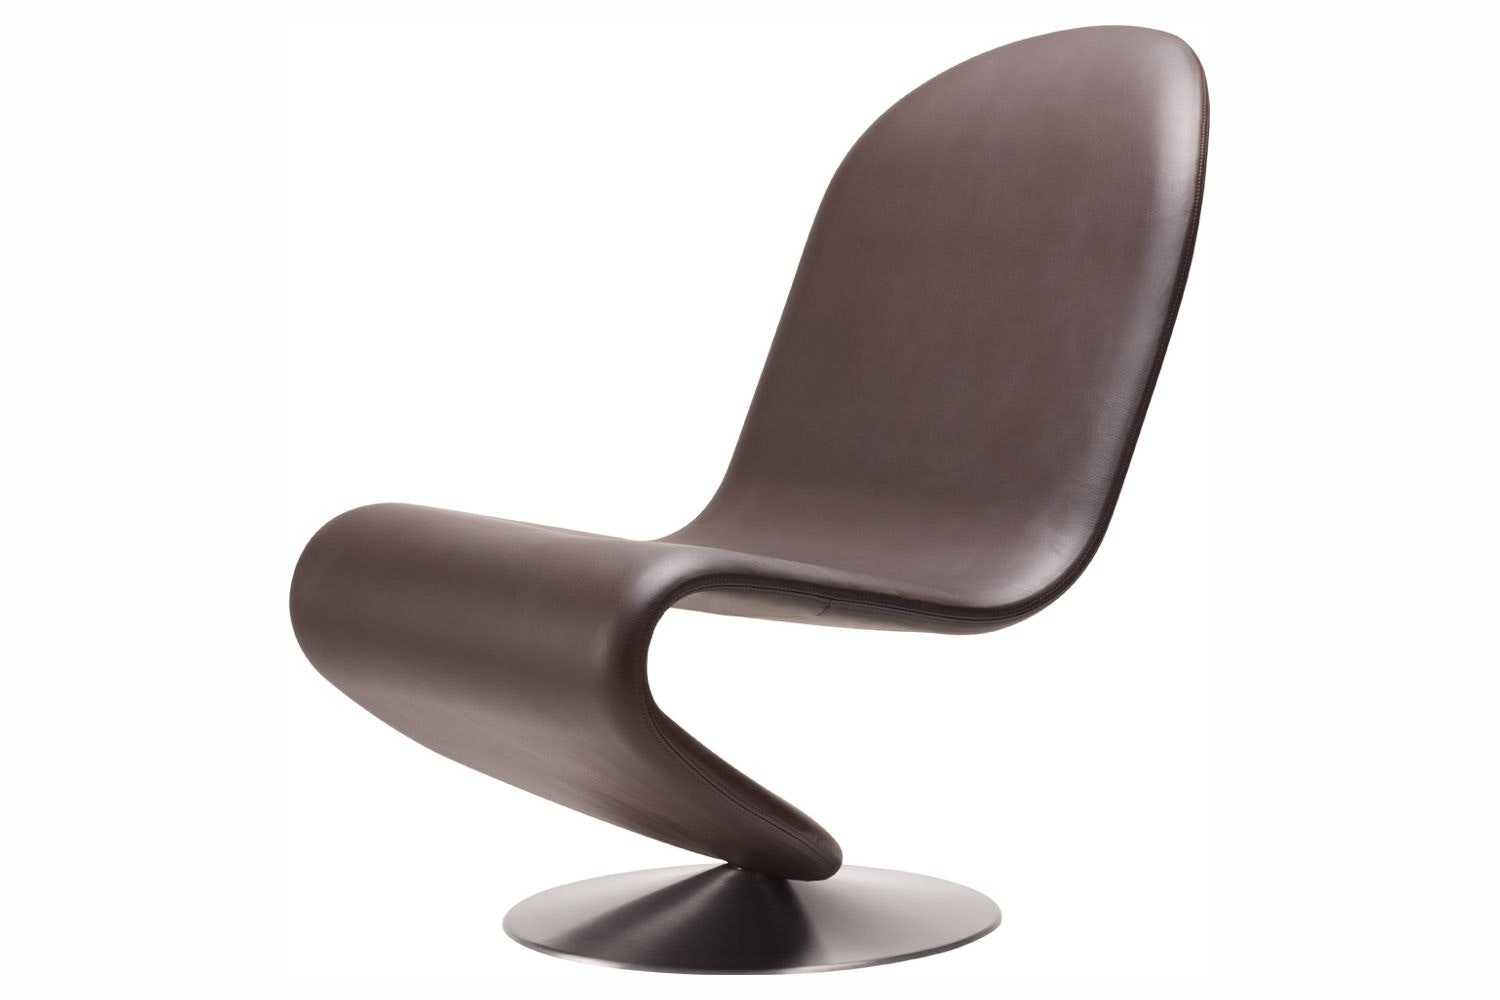 System 1-2-3 Lounge Chair Standard by Verner Panton for Verpan